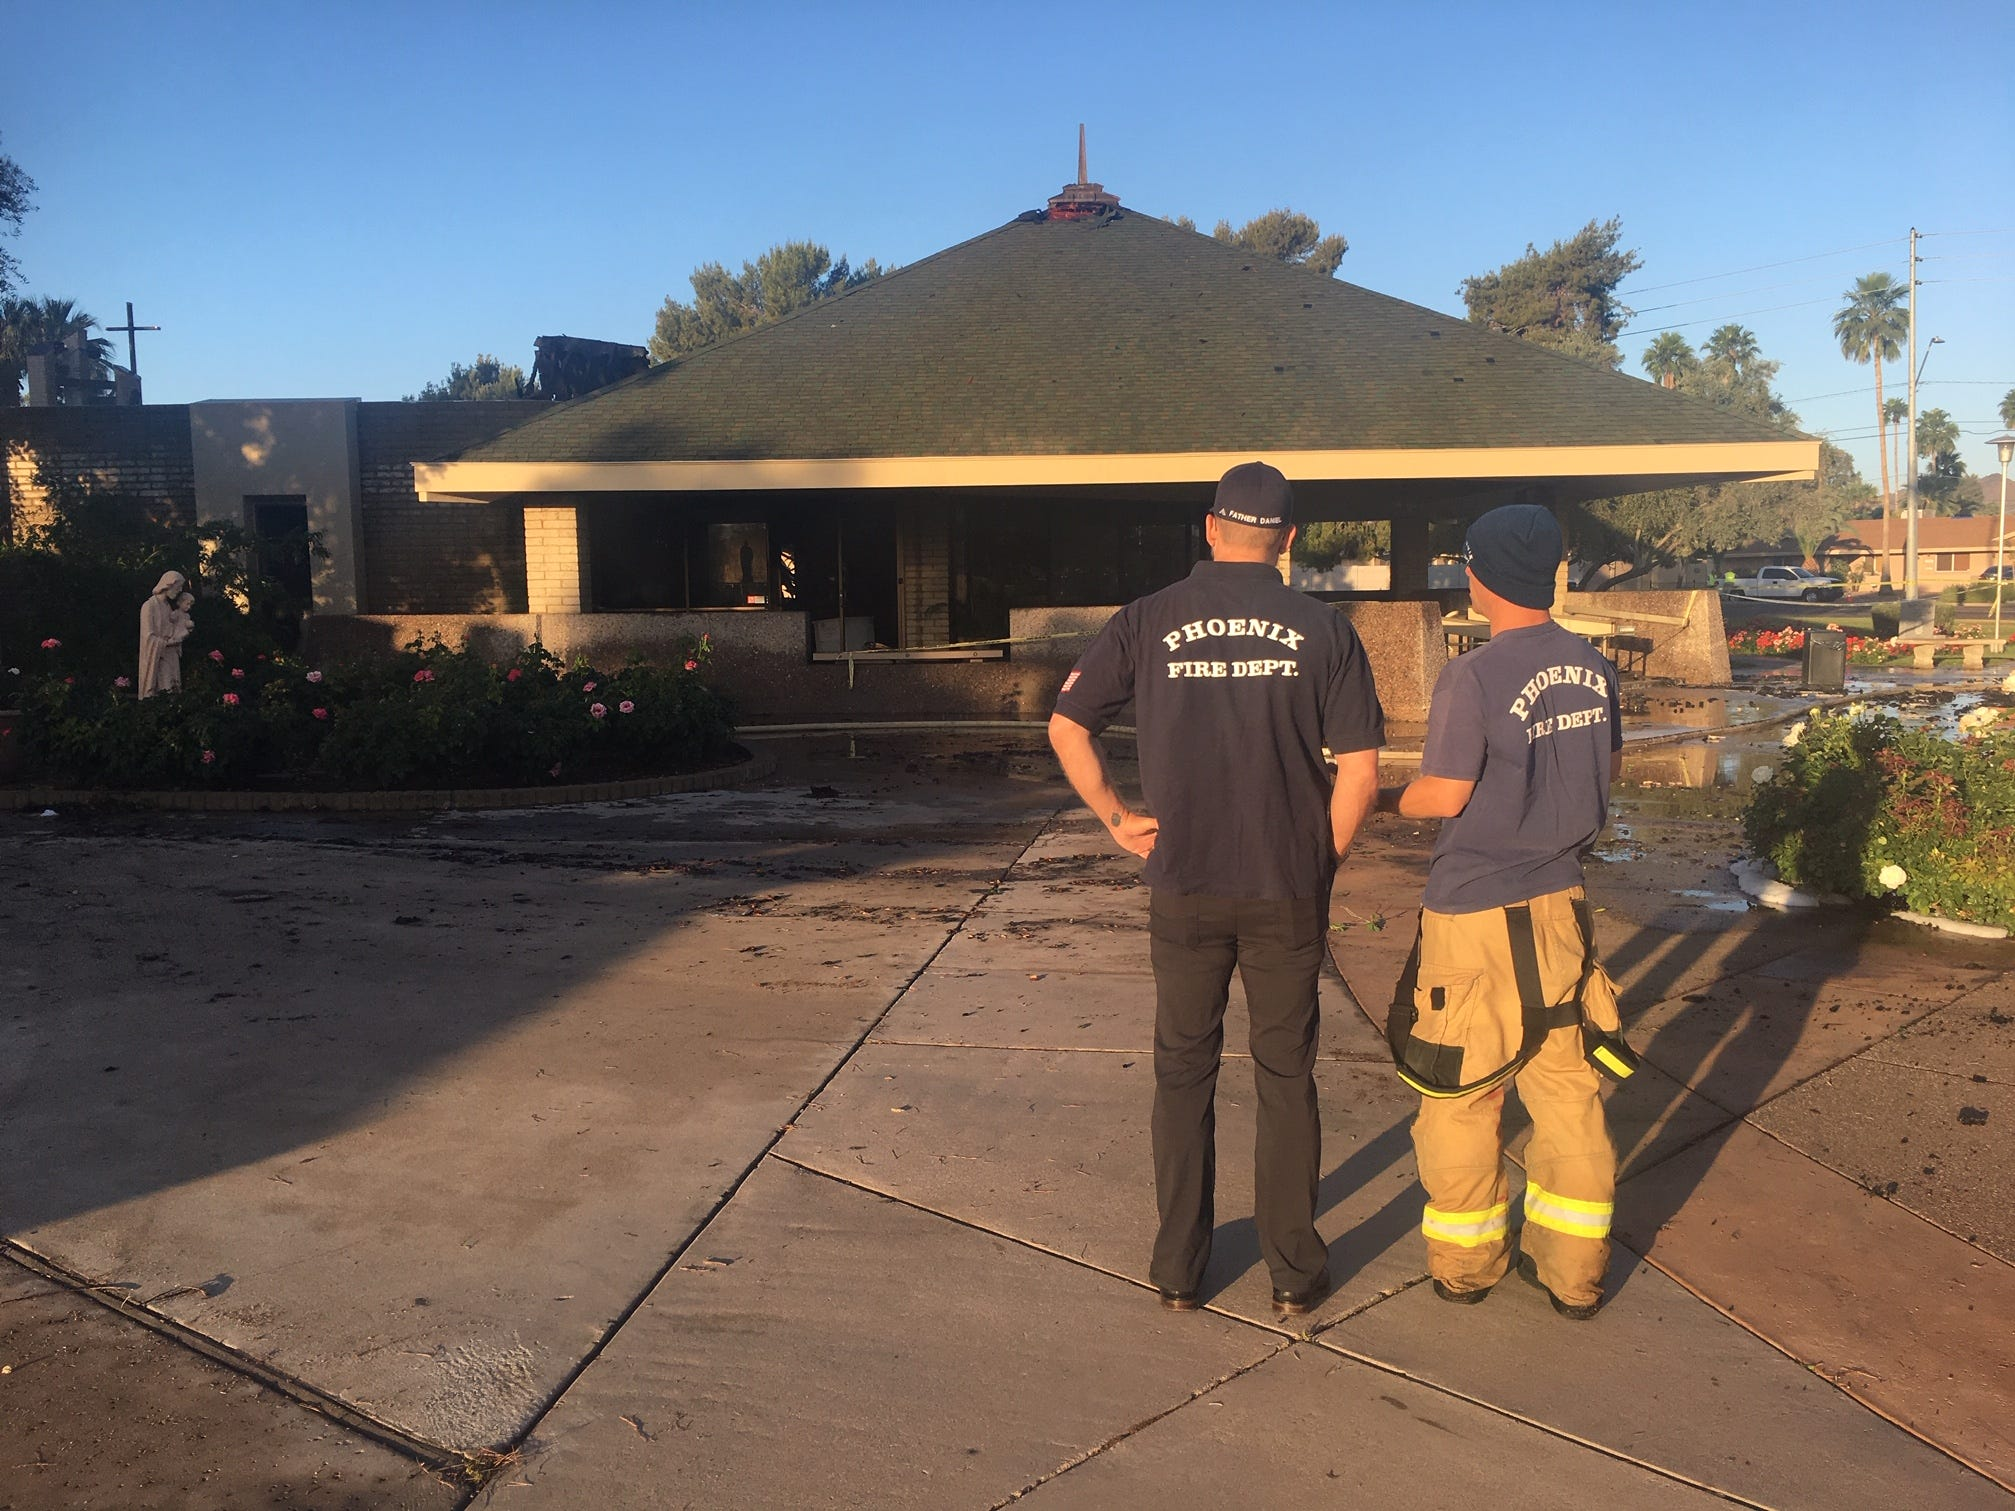 St. Joseph's Catholic Church in northeast Phoenix was damaged in a fire on May 1, 2019.